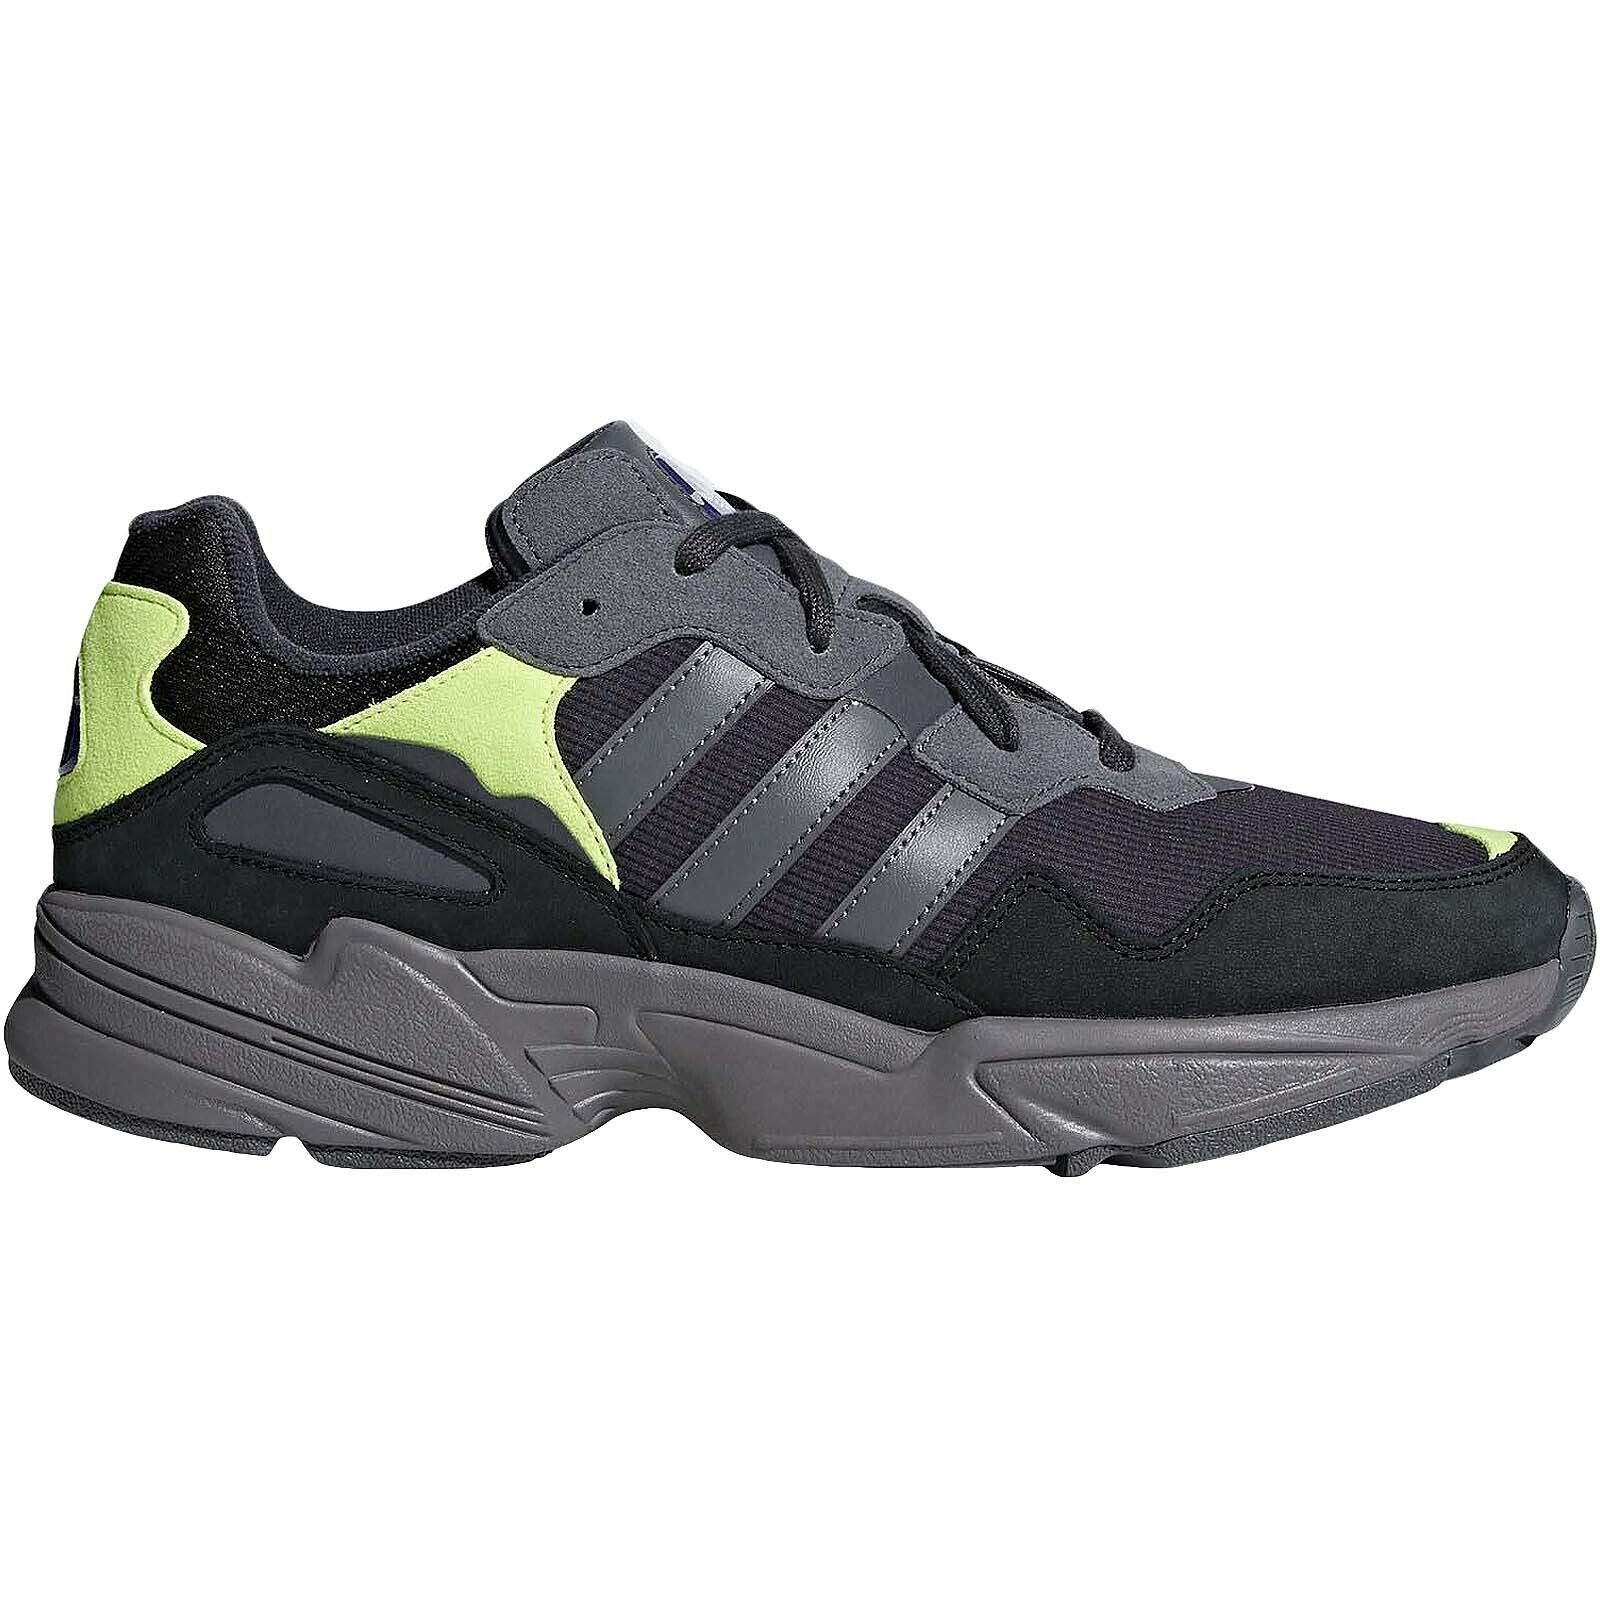 Adidas Originals Mens YUNG-96 Lace Up Casual Trainers Turnschuhe schuhe - Carbon